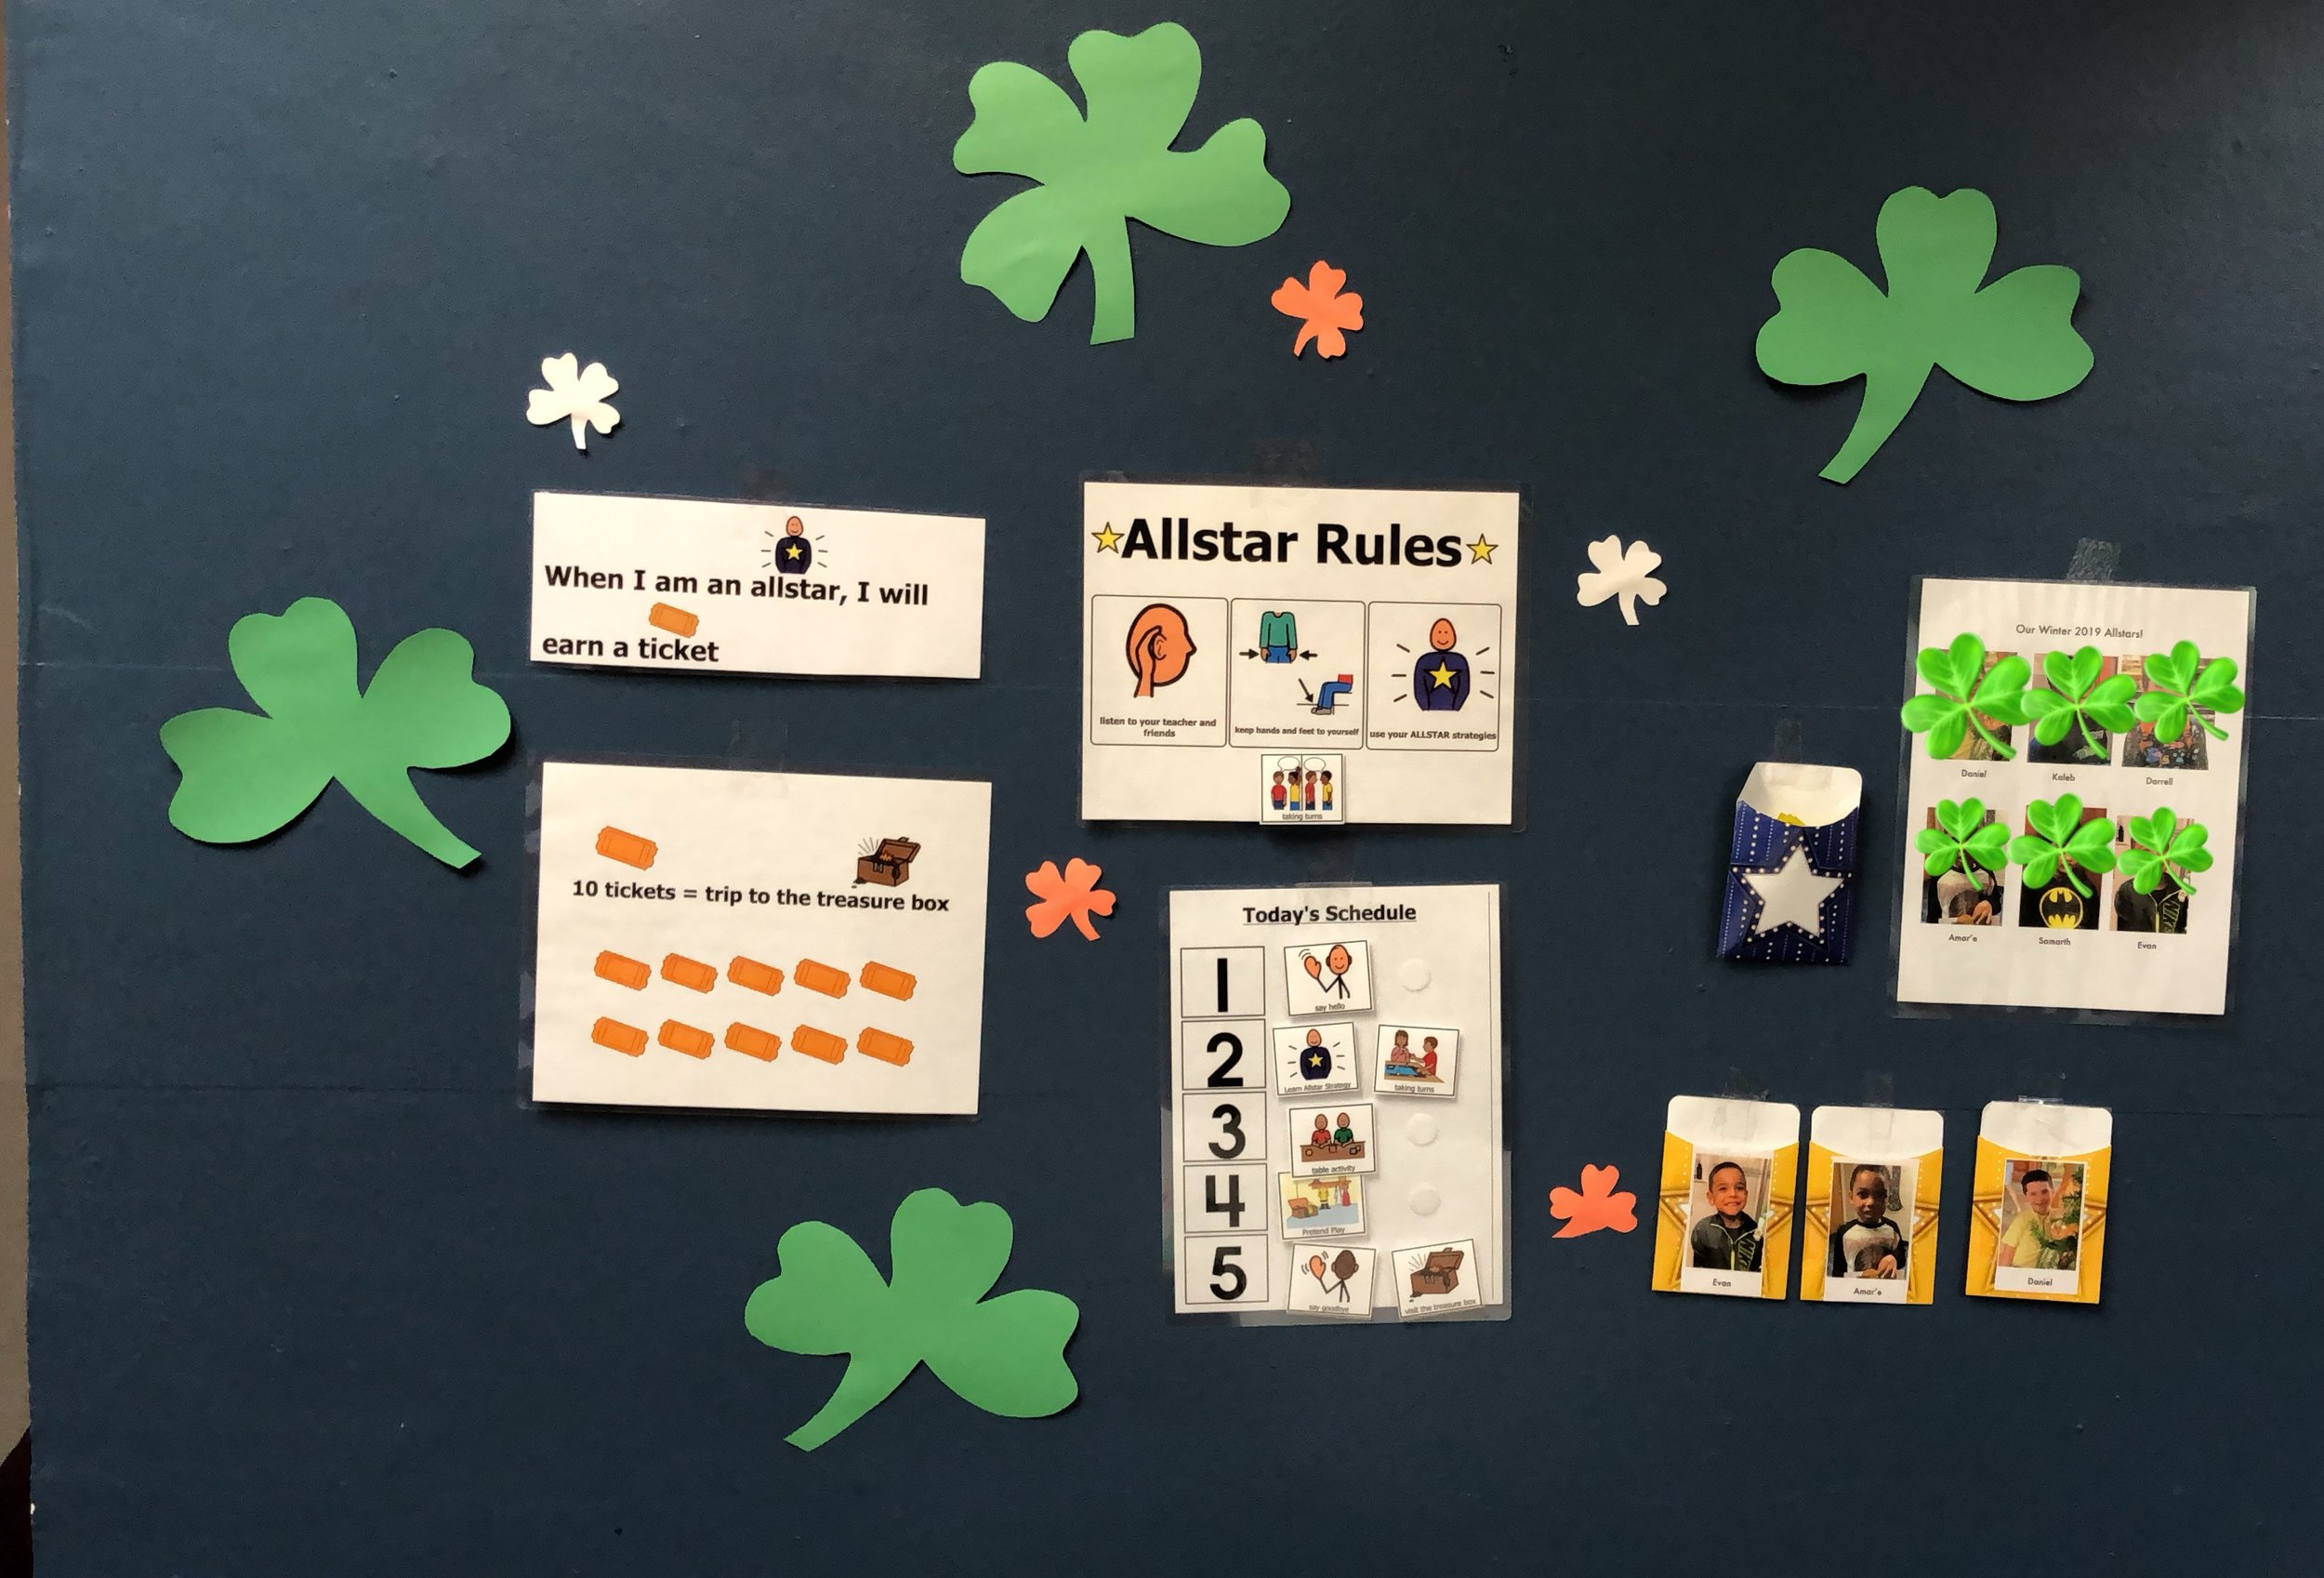 Our Allstar wall was made festive with some shamrocks!